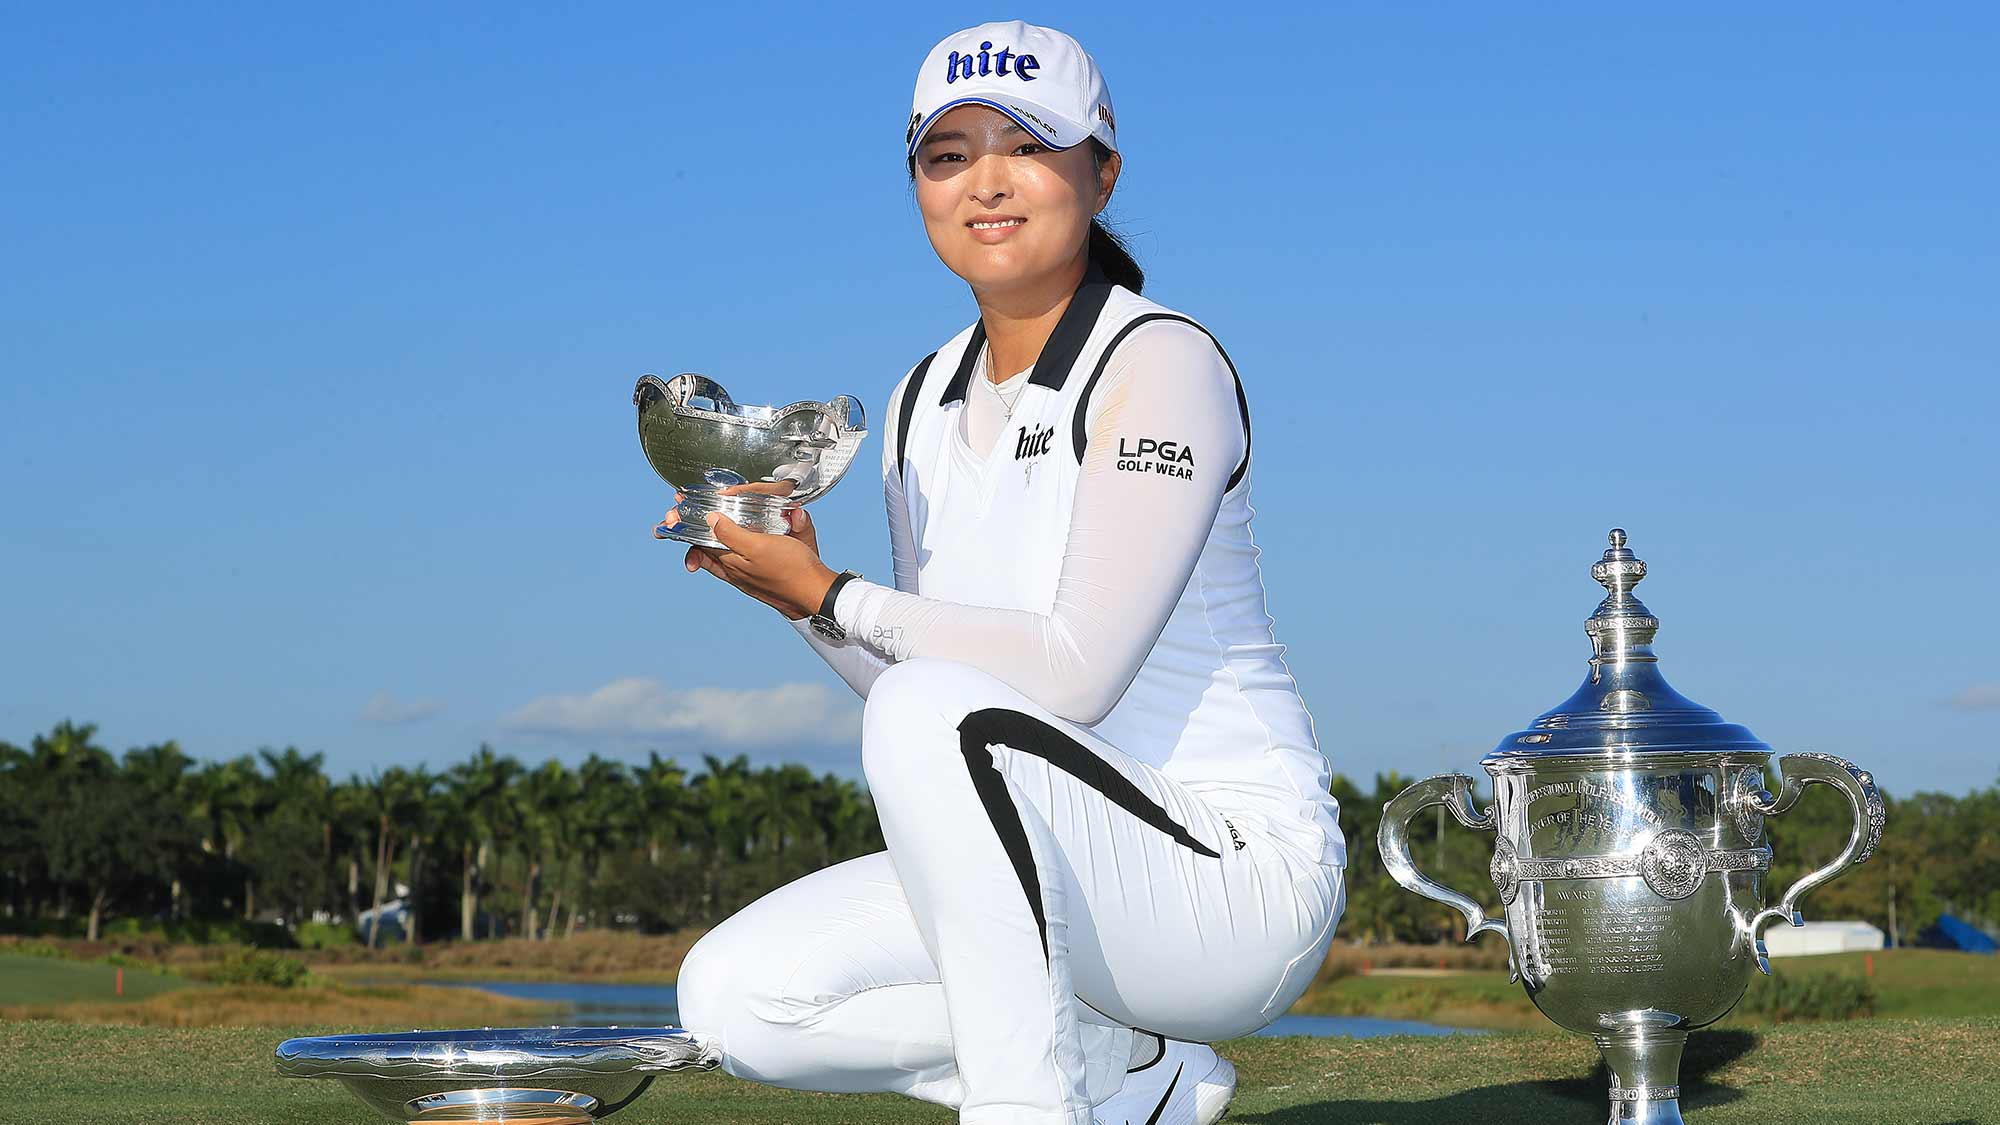 Jin Young Ko of South Korea poses with the Rolex Annika Major Award, Vare Trophy and the Rolex Player of the Year trophy after the final round of the CME Group Tour Championship at Tiburon Golf Club on November 24, 2019 in Naples, Florida